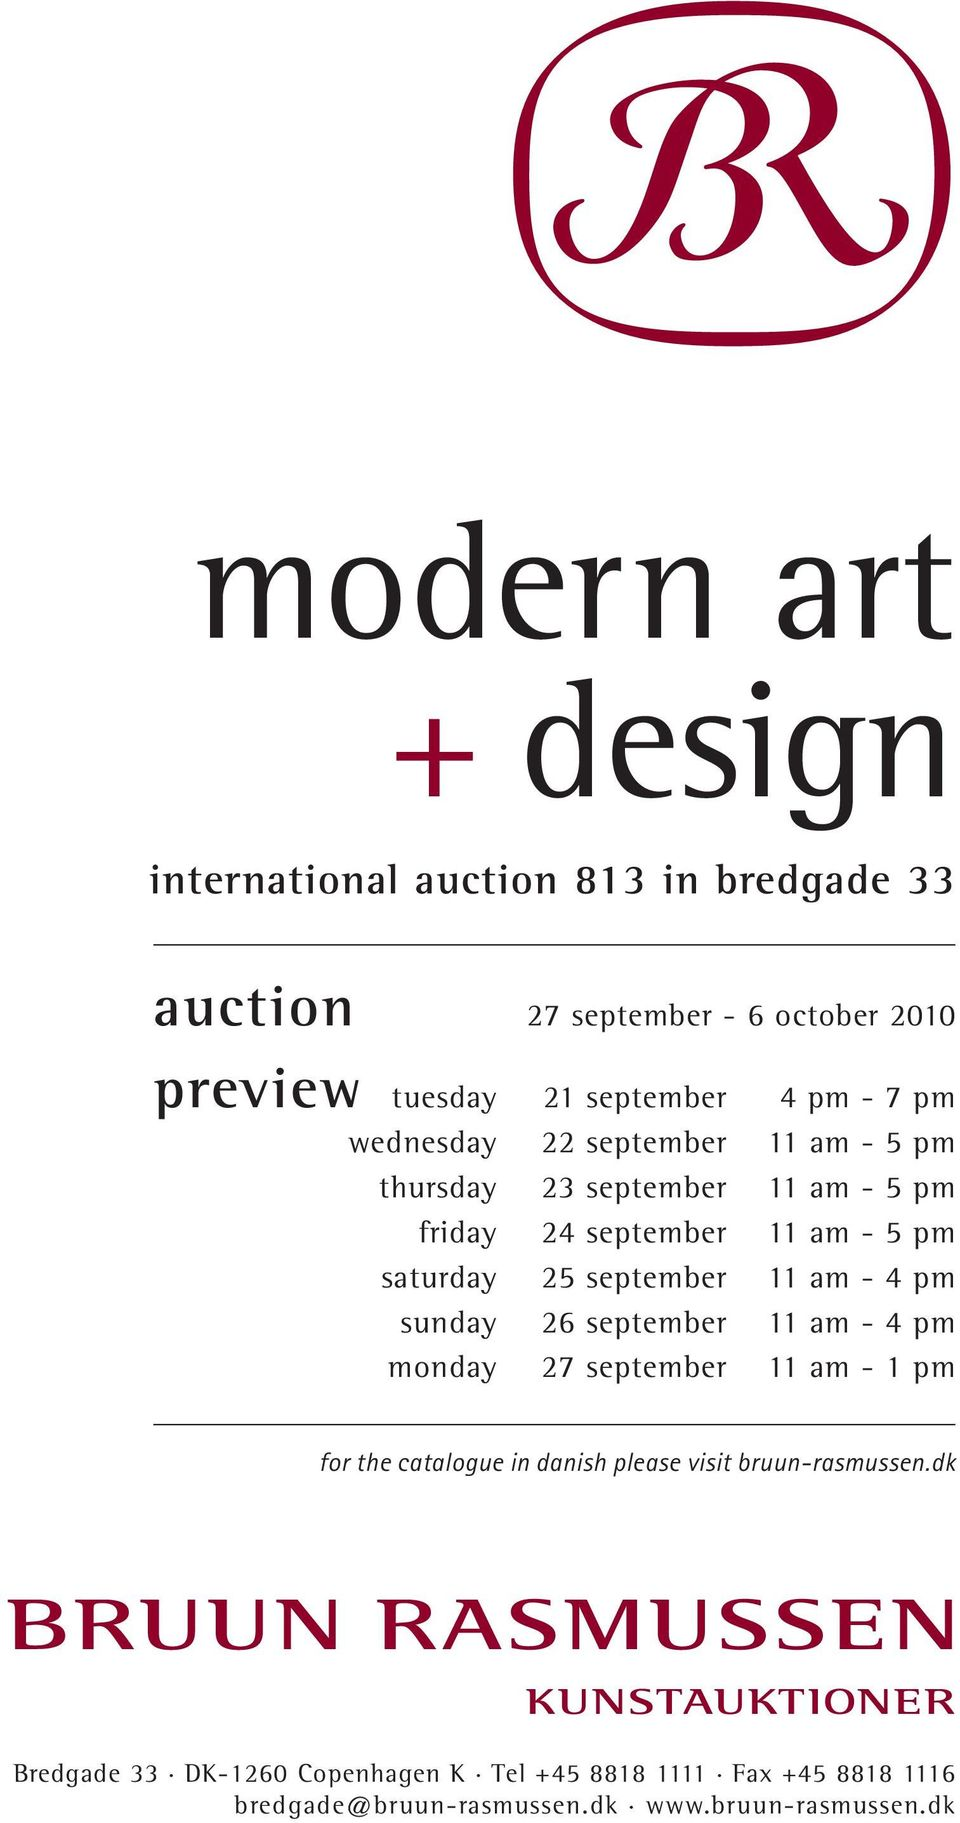 september 11 am - 4 pm sunday 26 september 11 am - 4 pm monday 27 september 11 am - 1 pm for the catalogue in danish please visit